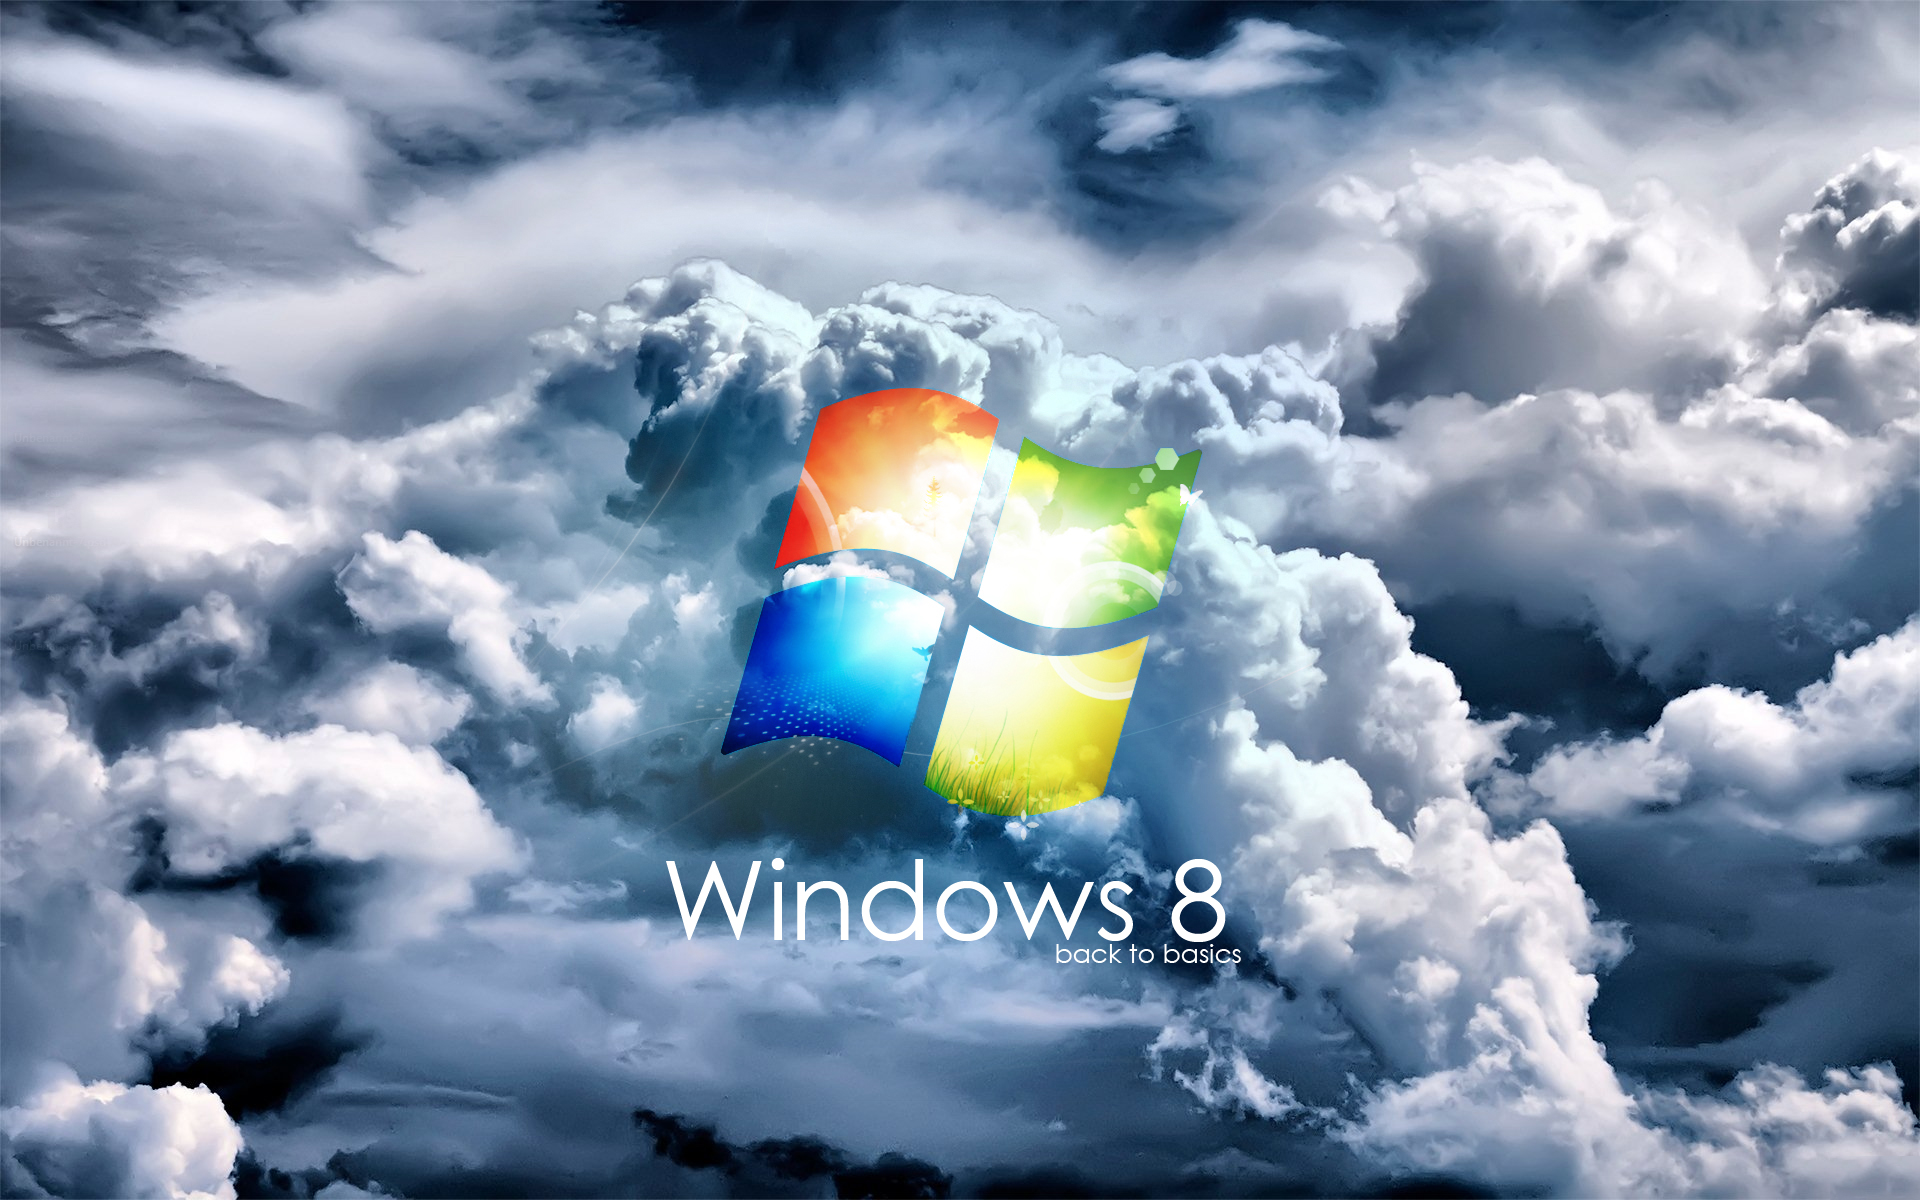 Windows 8 Wallpapers Free Download |